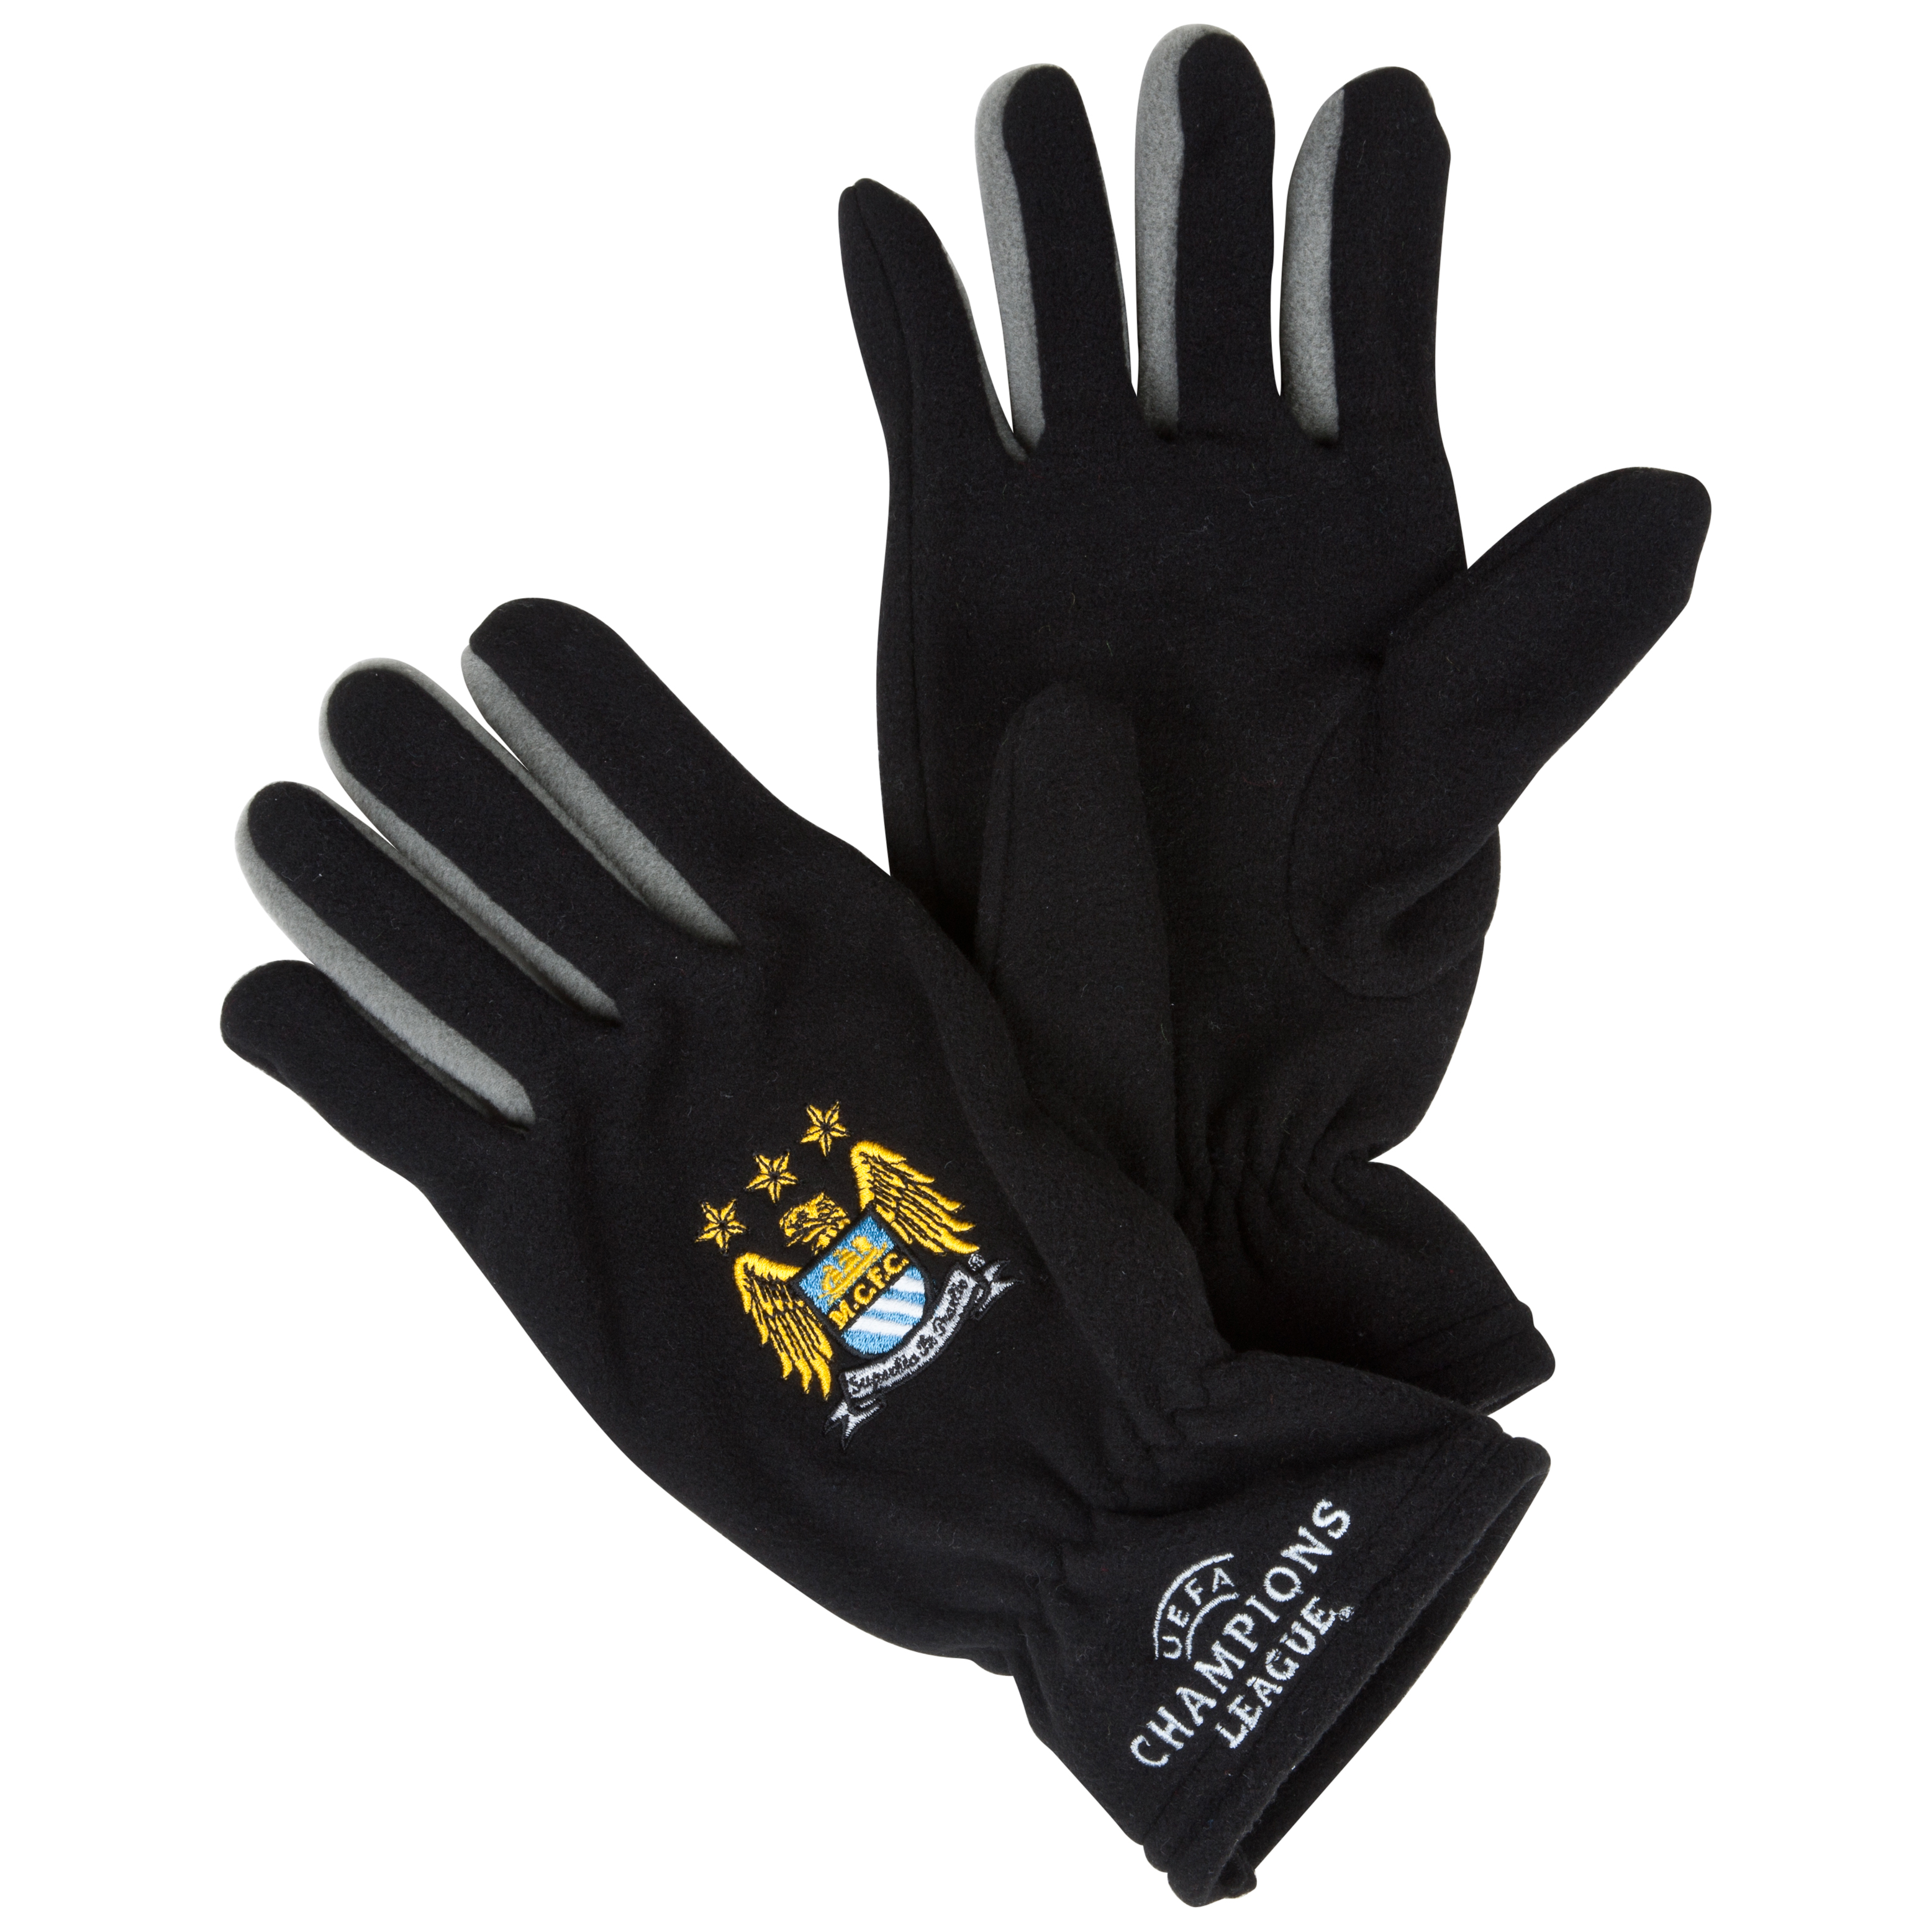 Manchester City UEFA Champions League Embroidered Classic Fleece Gloves - Black